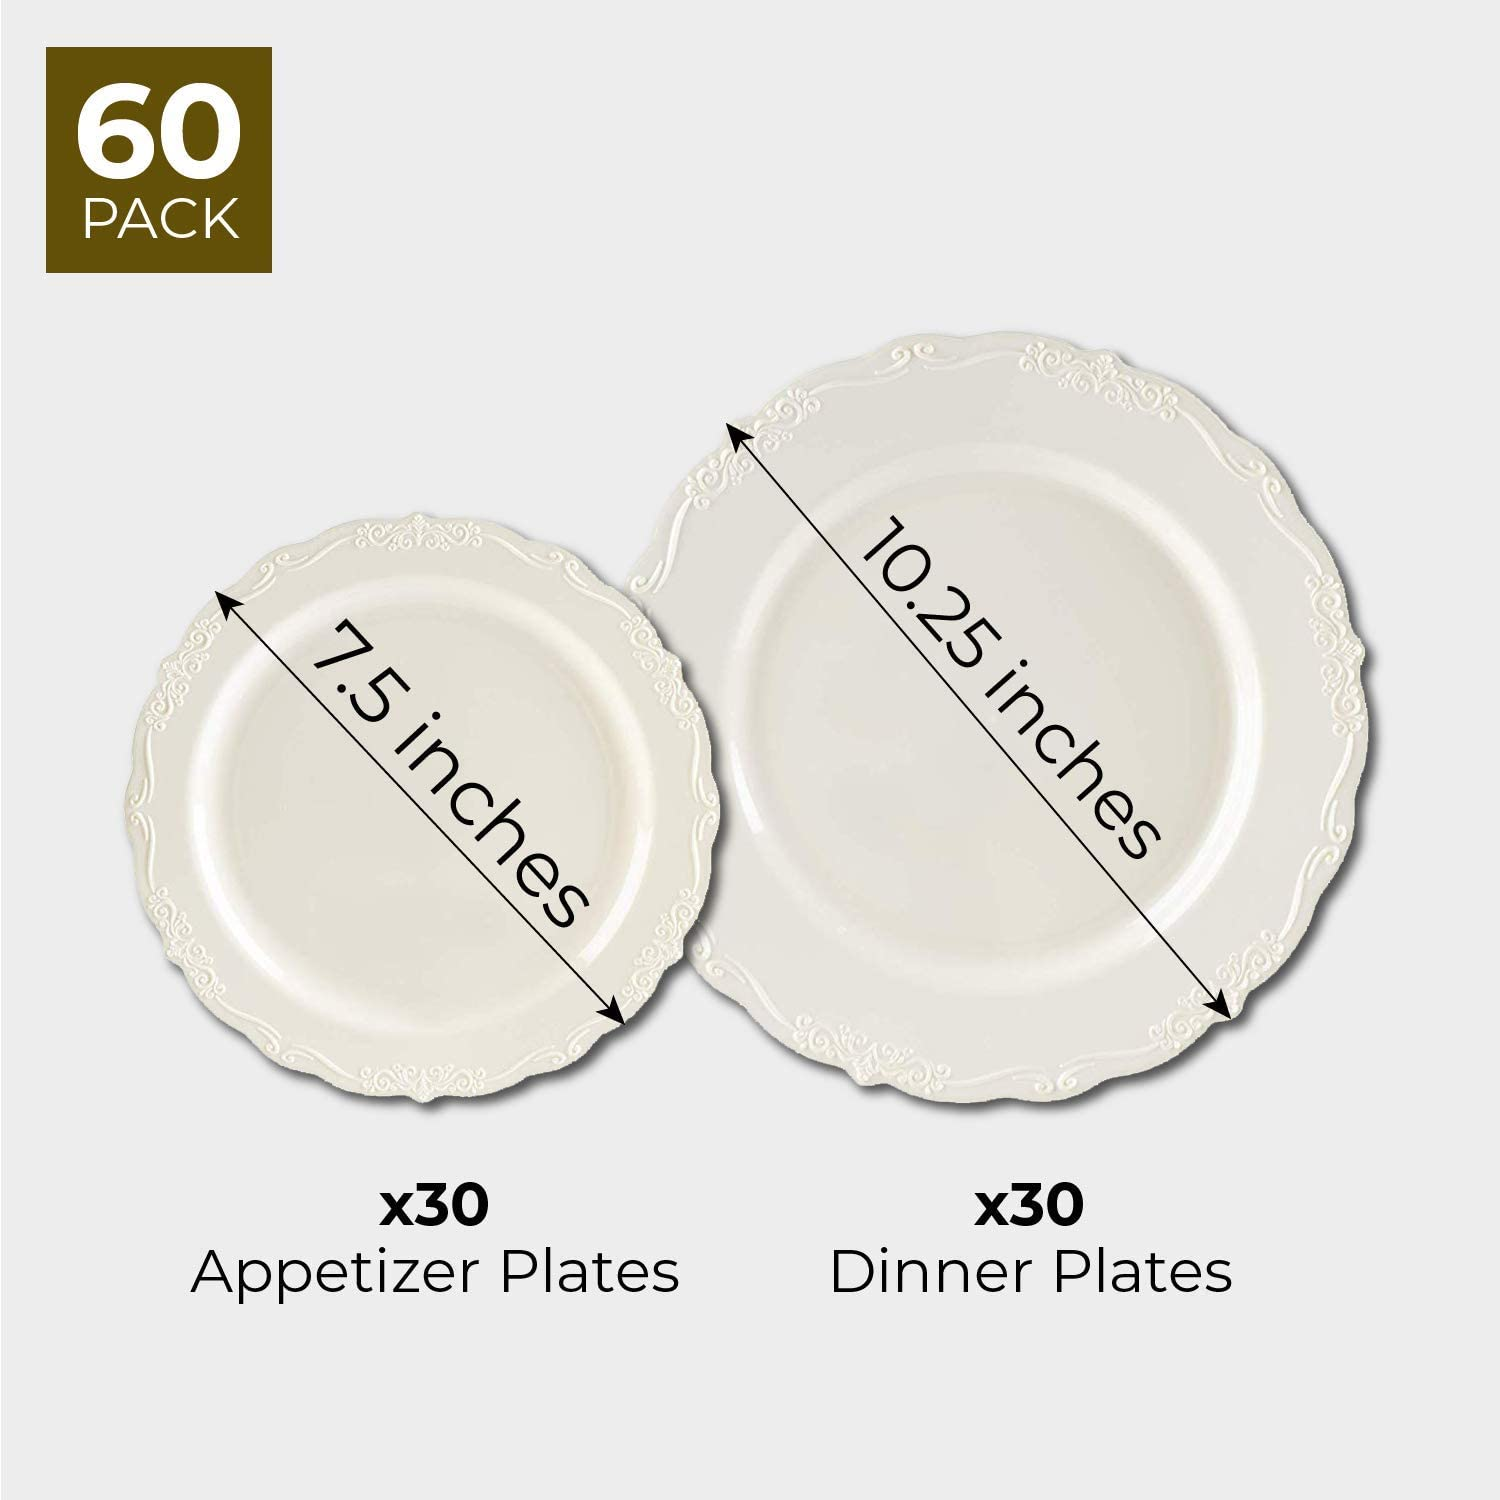 30 Dessert and 30 Dinner Plates Vintage Plastic Plates 2 Sizes 7.5 Inches and 10.25 Inches Cream with Fine Detailing 60-Pack Disposable Dinnerware Elegant Place Setting